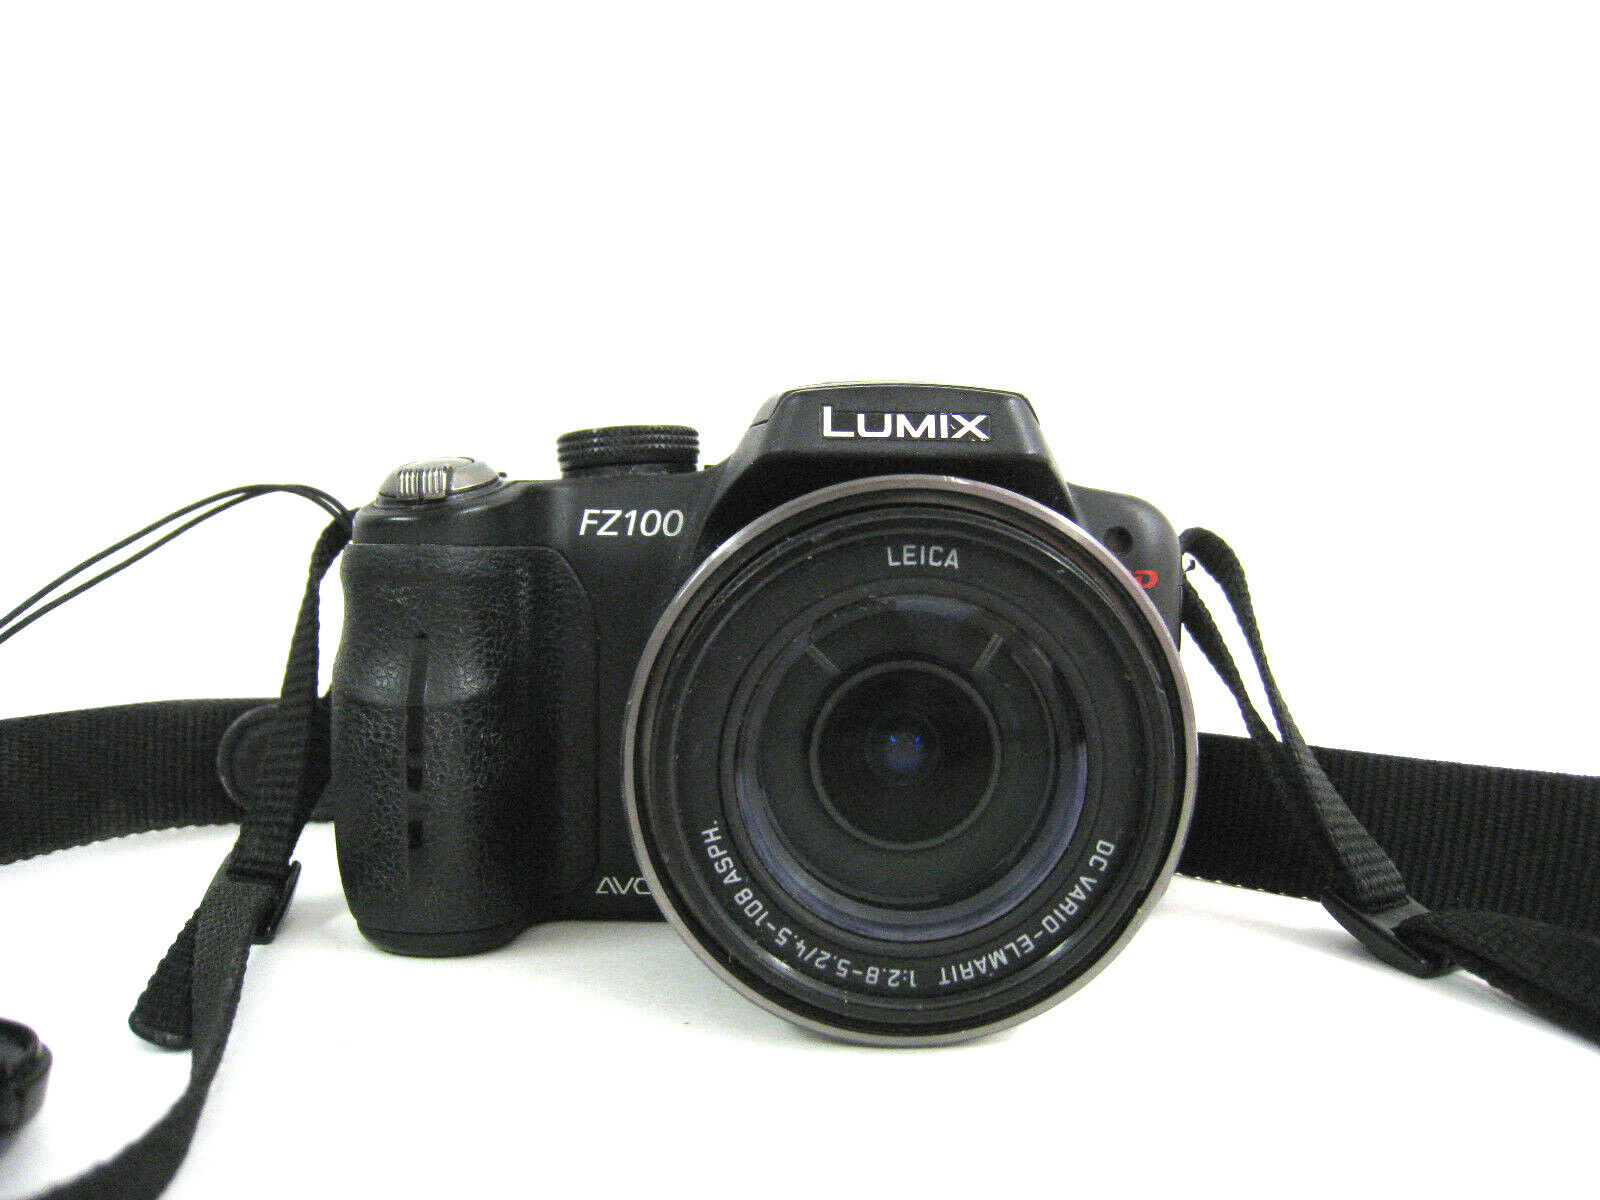 Panasonic Lumix DMC-FZ100 Shock Absorbing 44 Inch Classic Neoprene Strap by Digital Nwv Direct Micro Fiber Cleaning Cloth